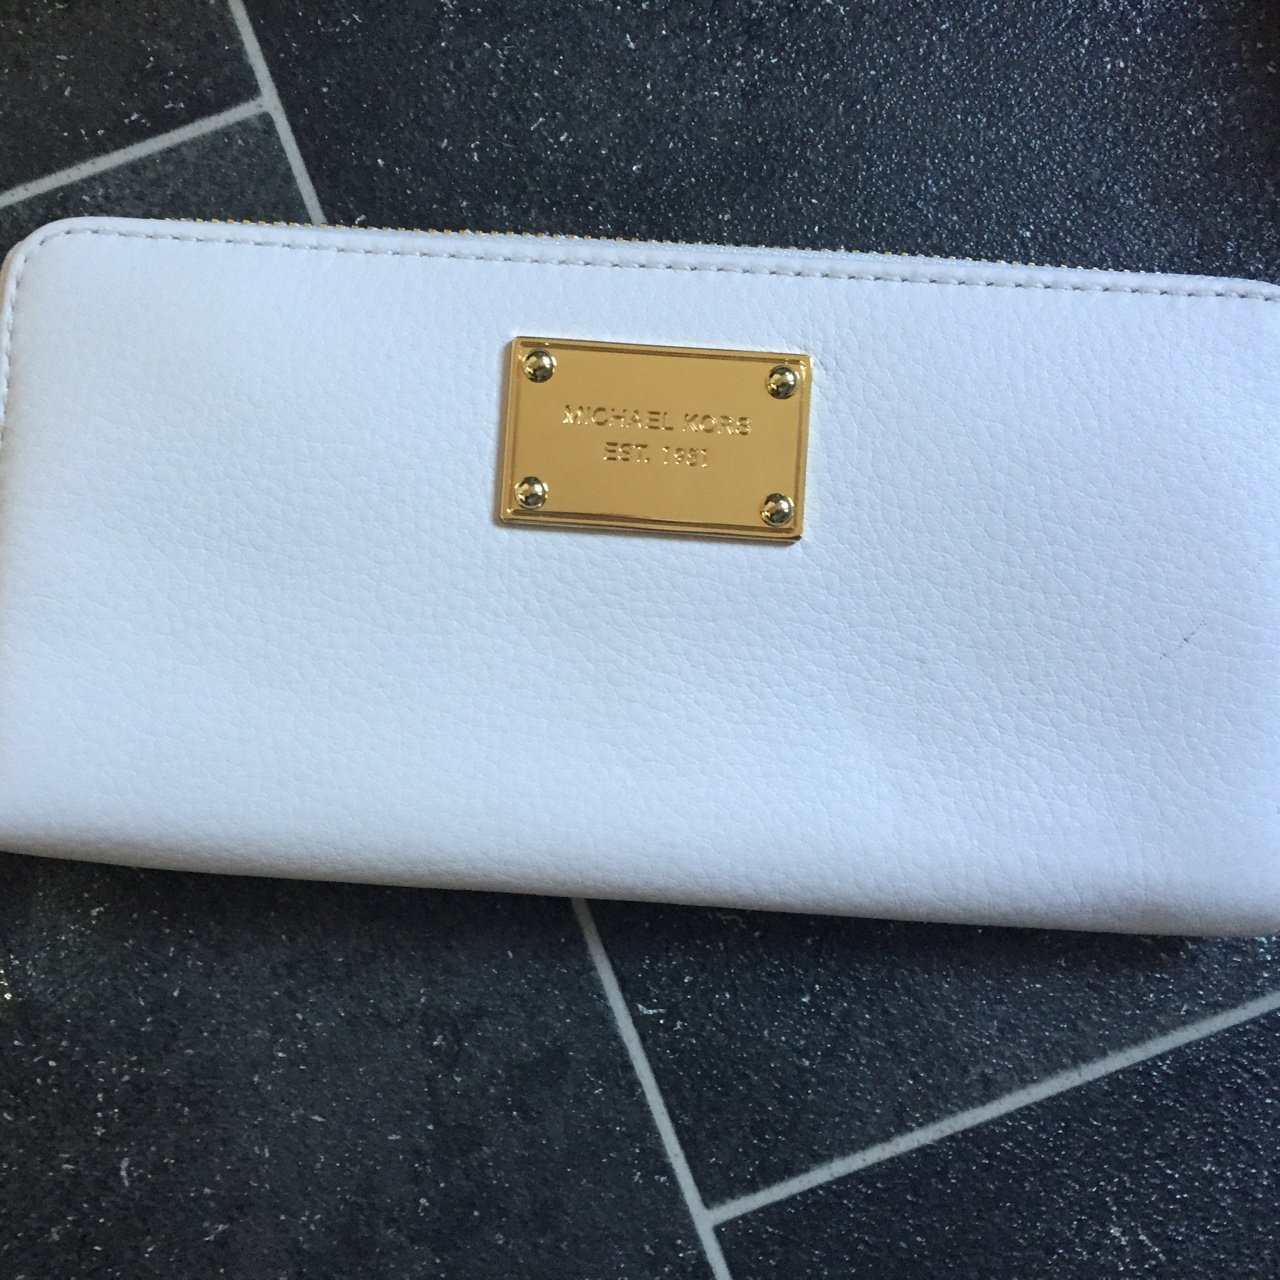 decabefc4f1f New Michael kors cream leather purse. Never used. Unwanted - Depop